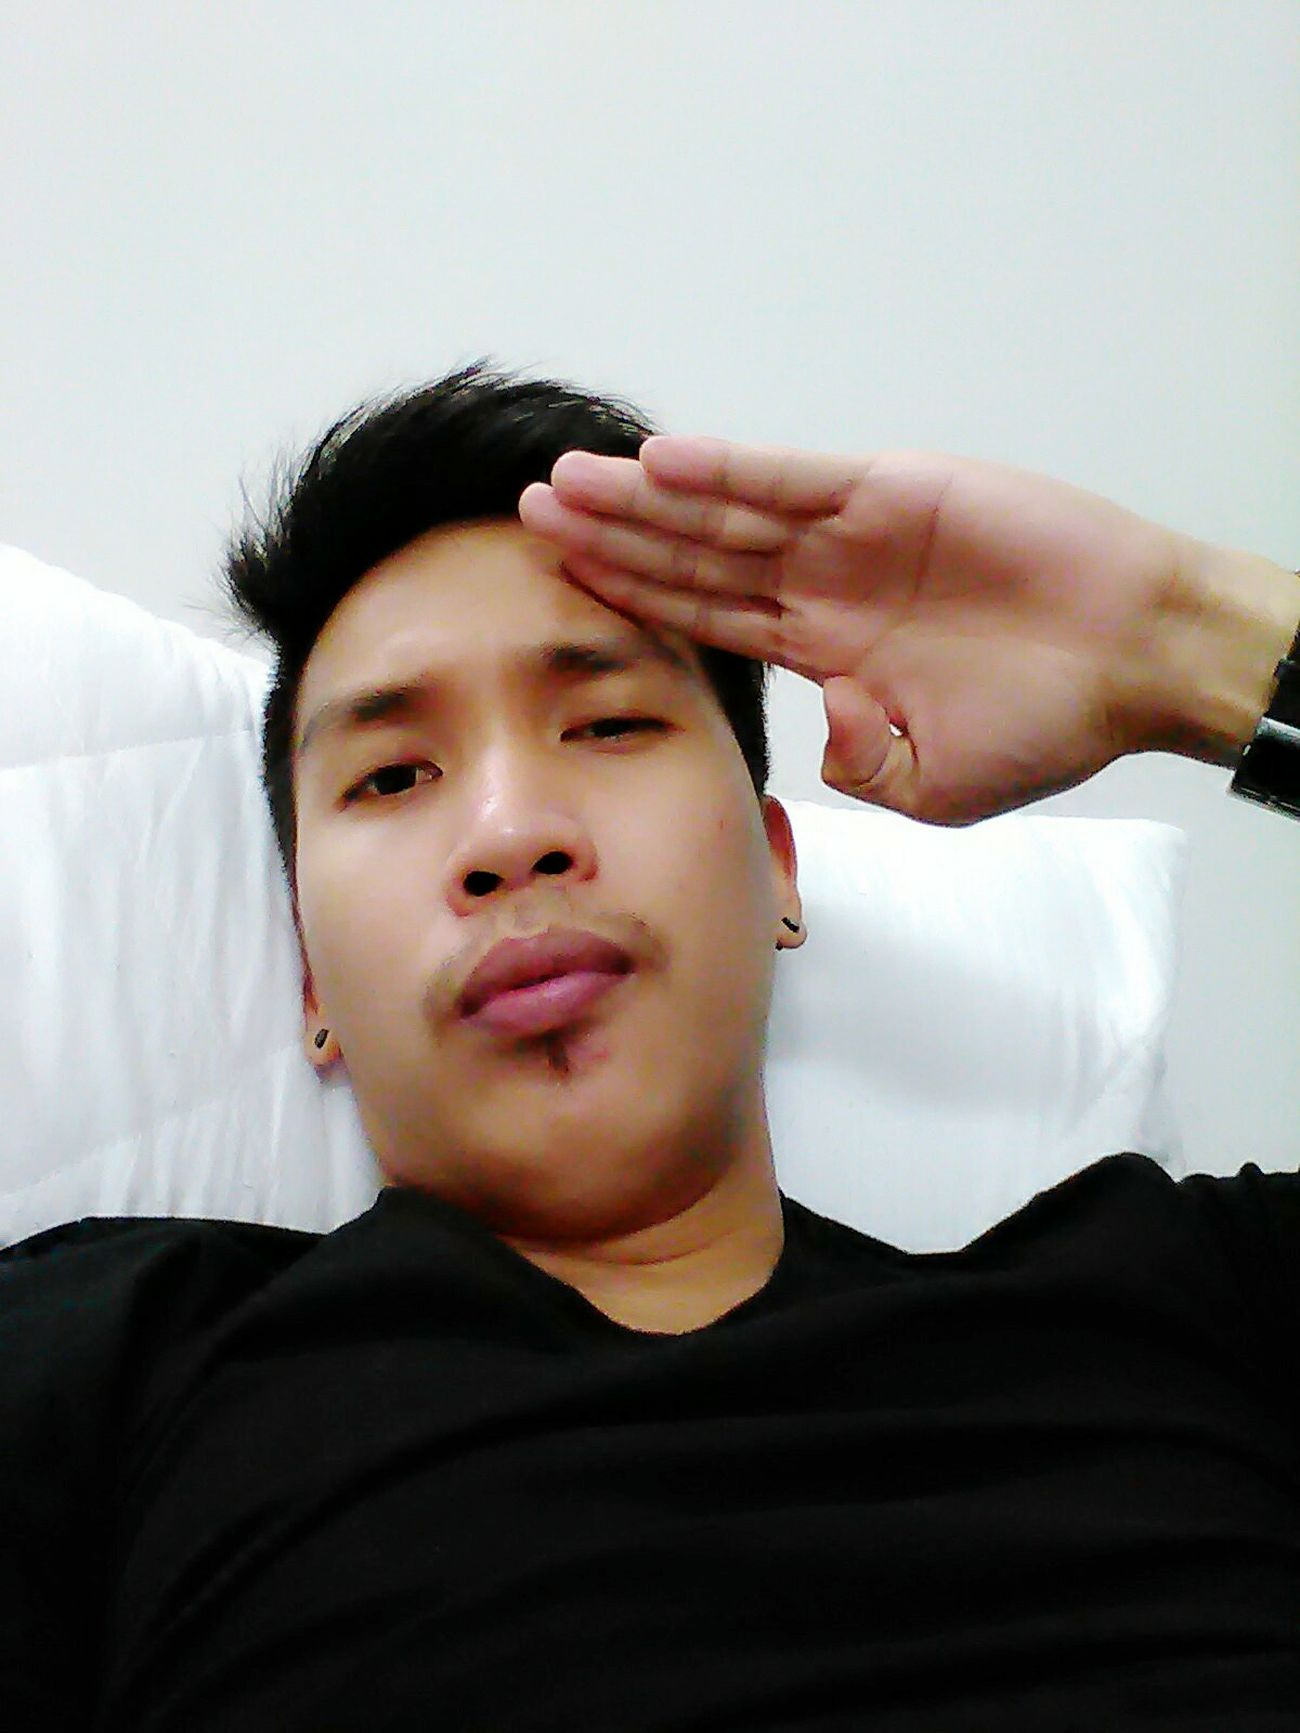 Yesboss Baby Salute Inlove♥ God Is Great. Selfie ✌ Love ♥